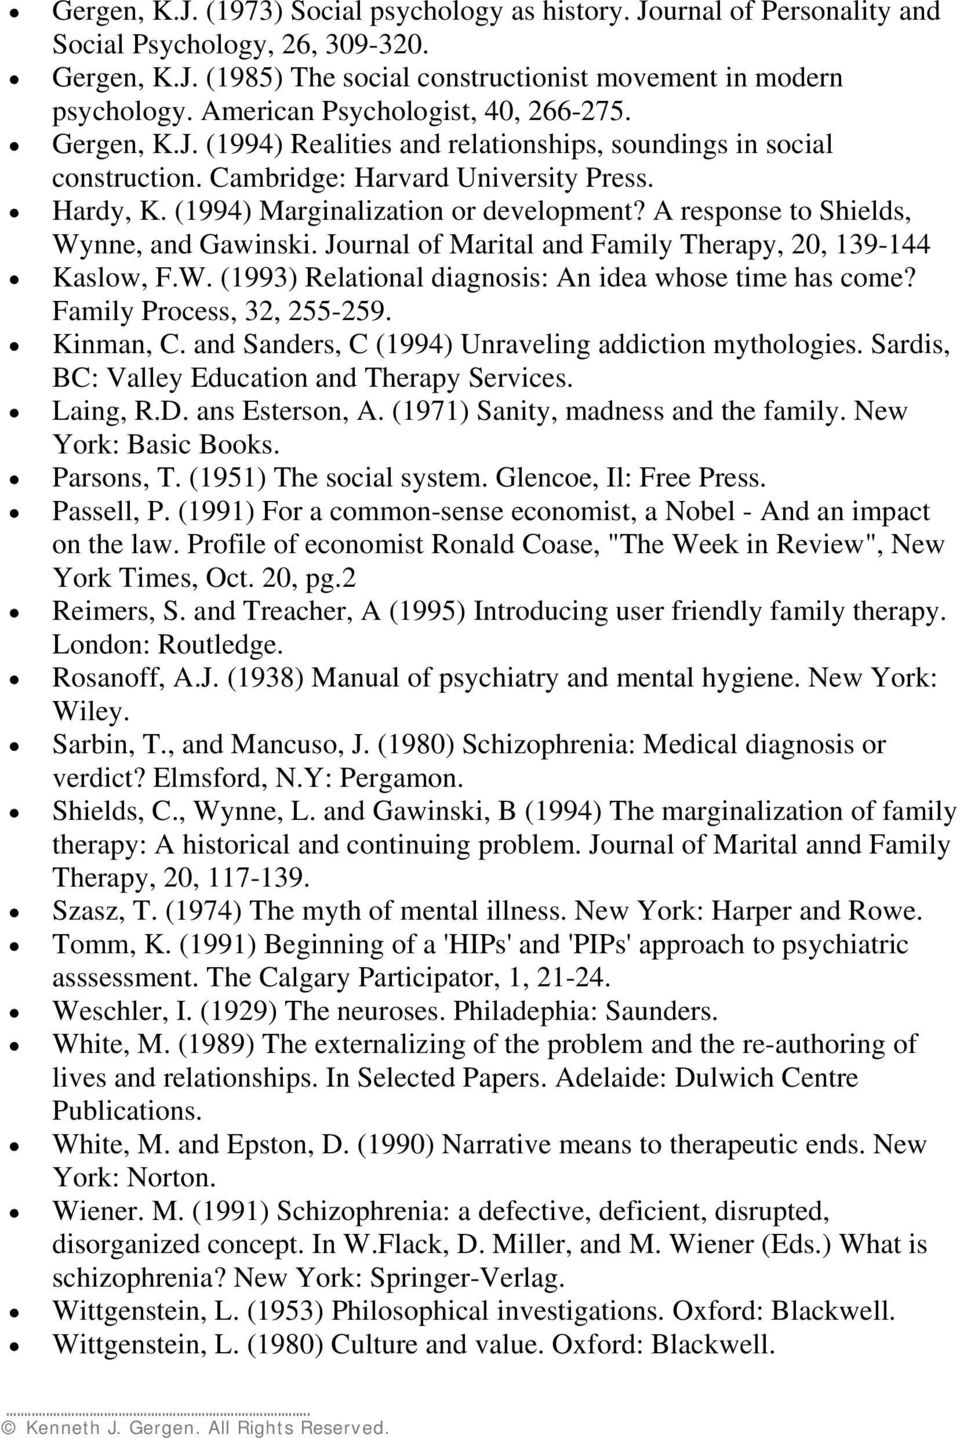 (1994) Marginalization or development? A response to Shields, Wynne, and Gawinski. Journal of Marital and Family Therapy, 20, 139-144 Kaslow, F.W. (1993) Relational diagnosis: An idea whose time has come?